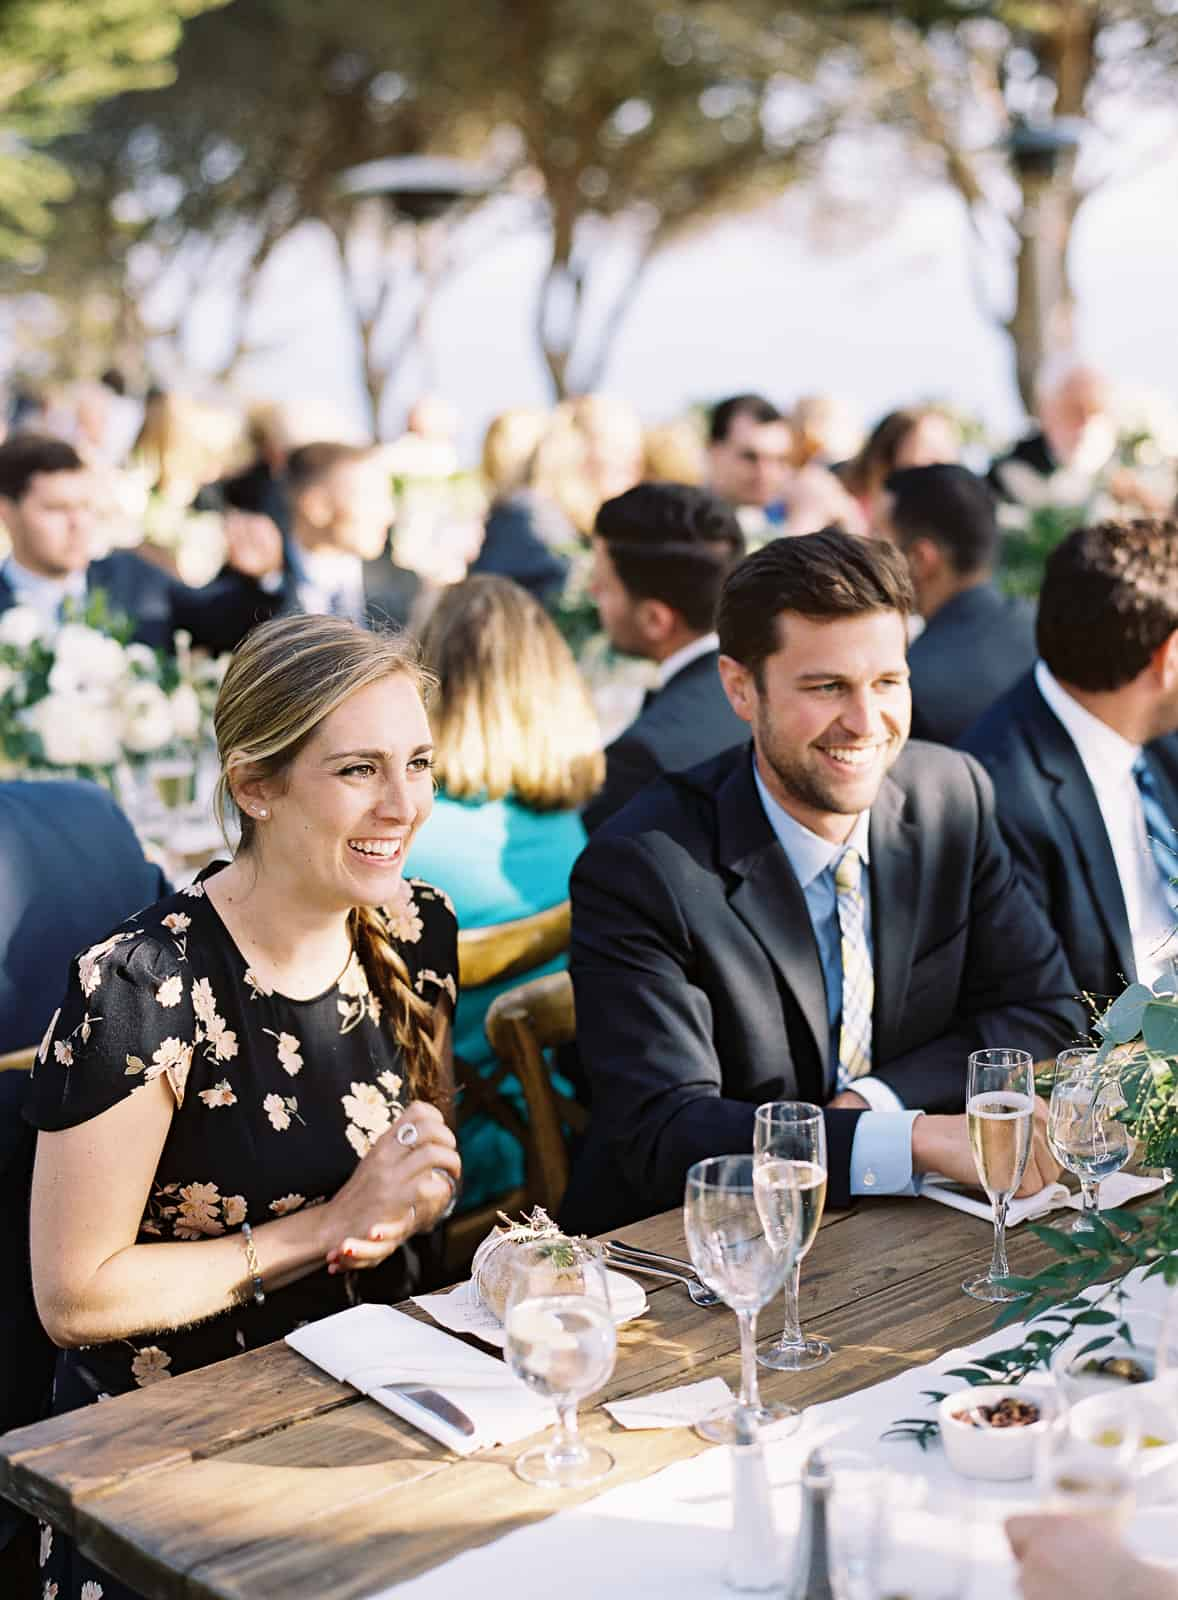 guests seated at dinner table